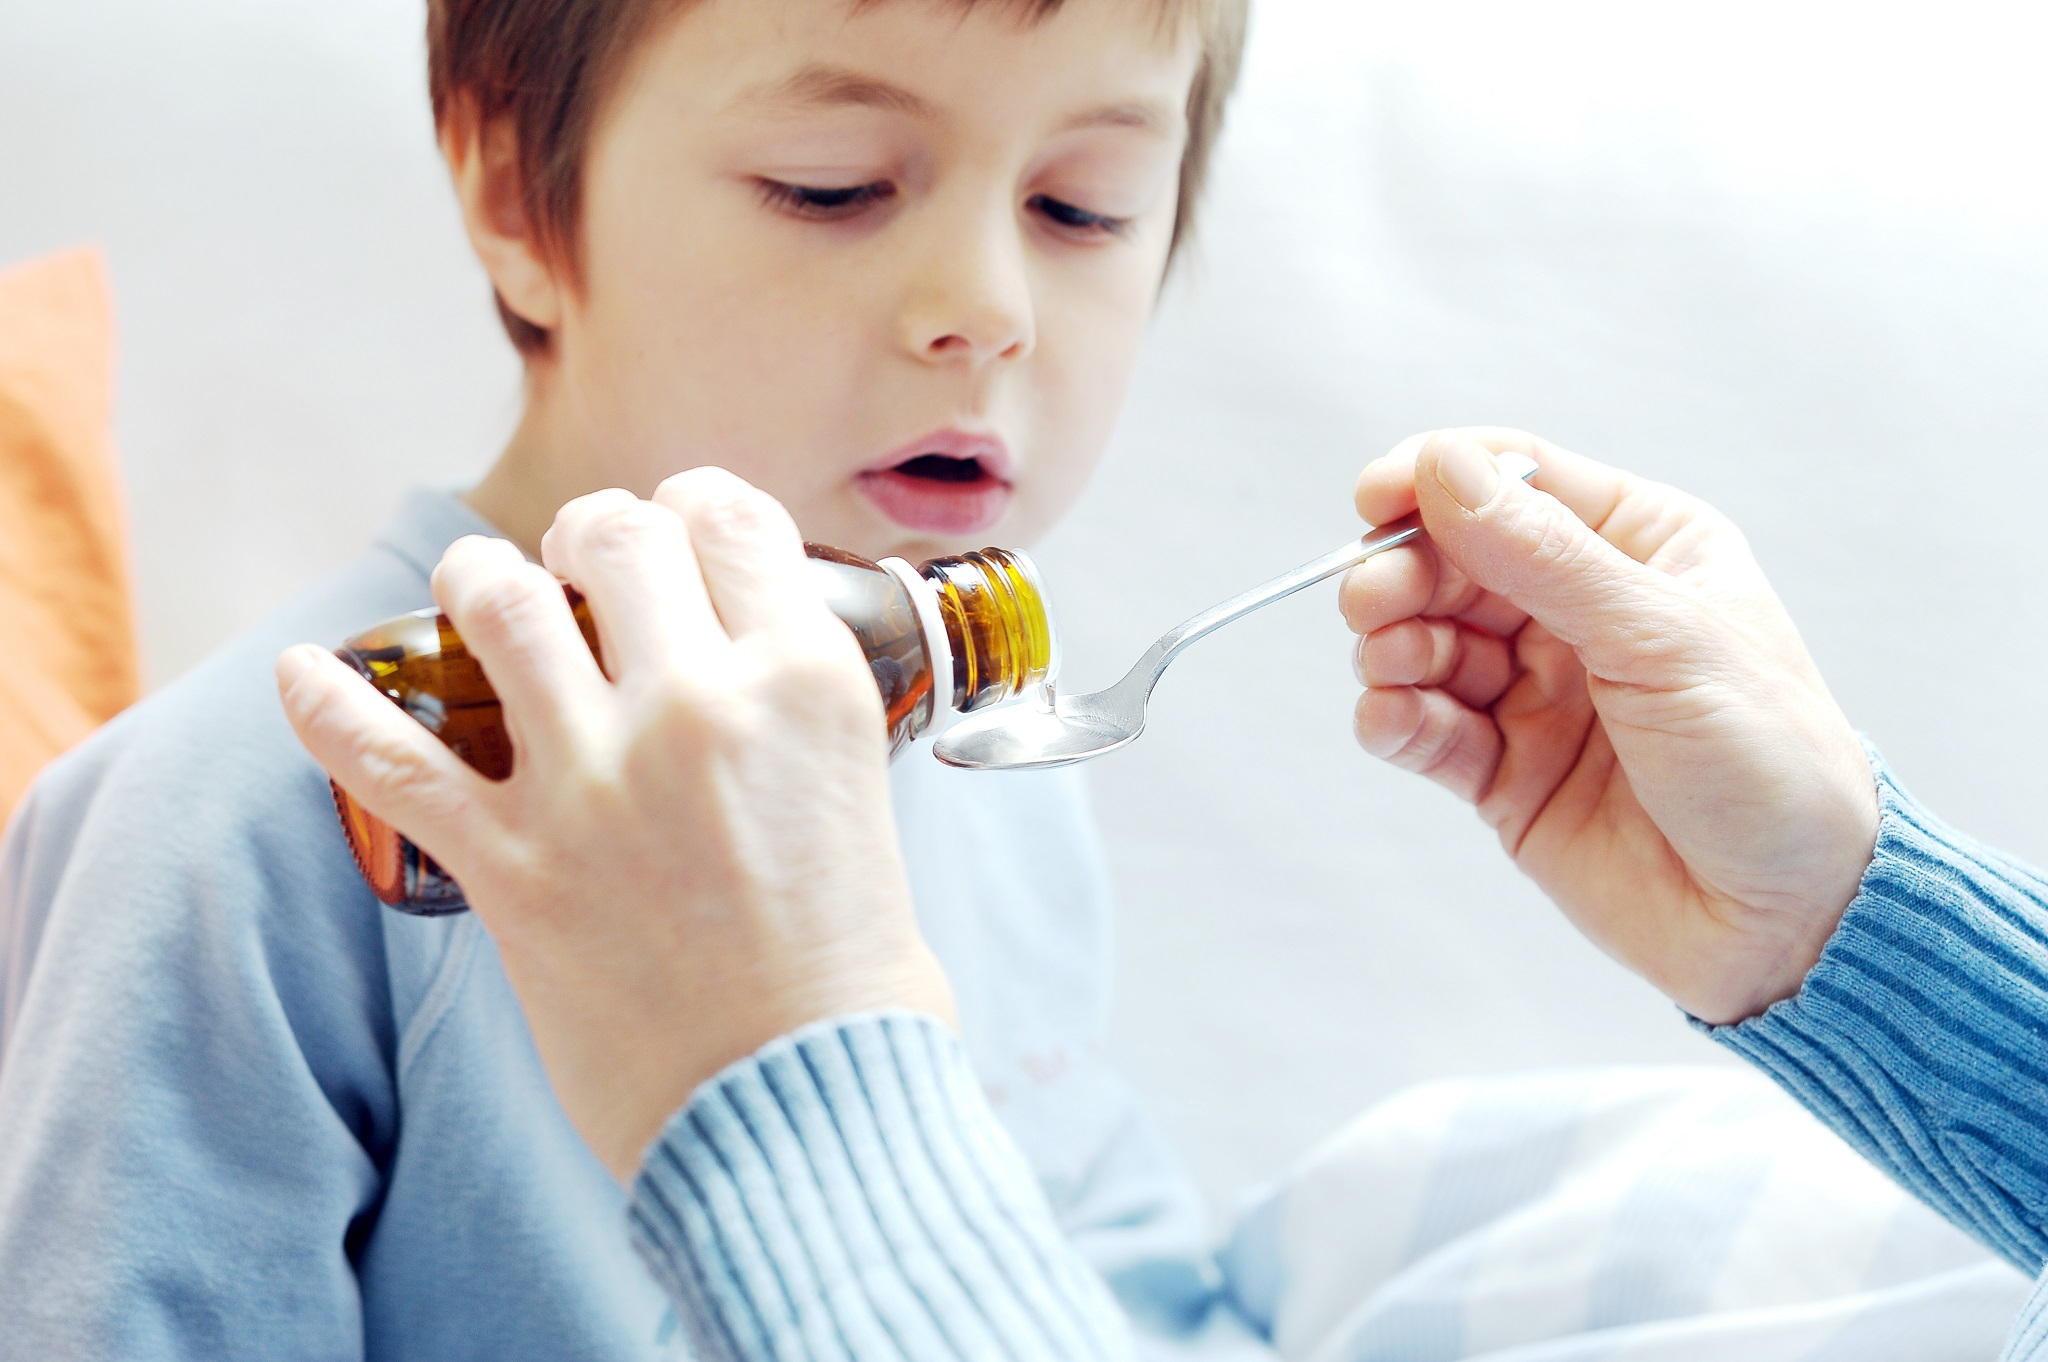 Medication Administration Training (MAT) for Child Care Providers